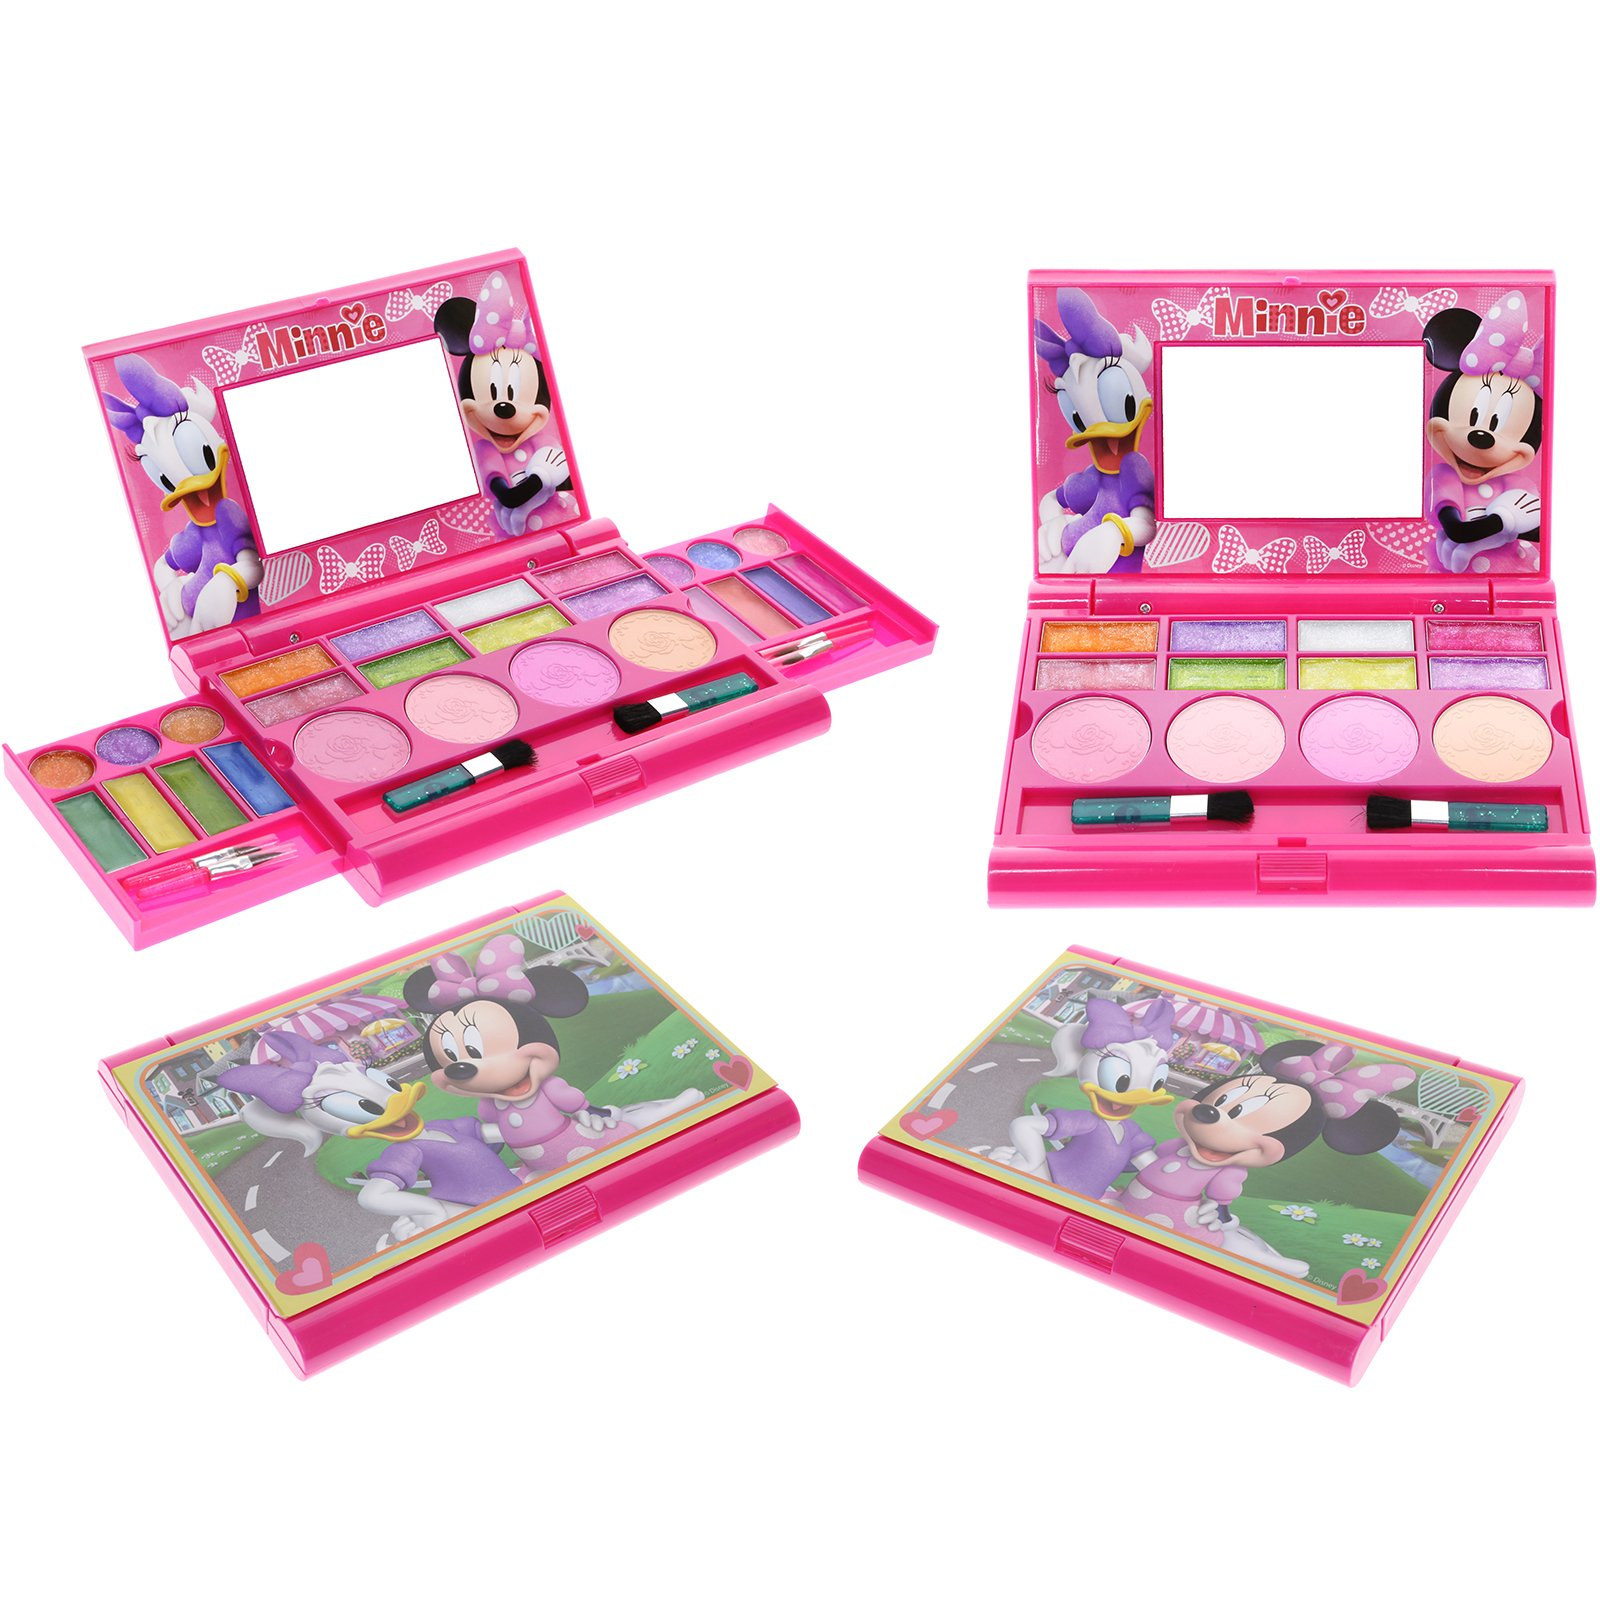 Townley Girl Disney Minnie Mouse Super Sparkly Cosmetic Set for Girls, 22 Lip glosses, 4 blushes in Mirrored case by Townley Girl